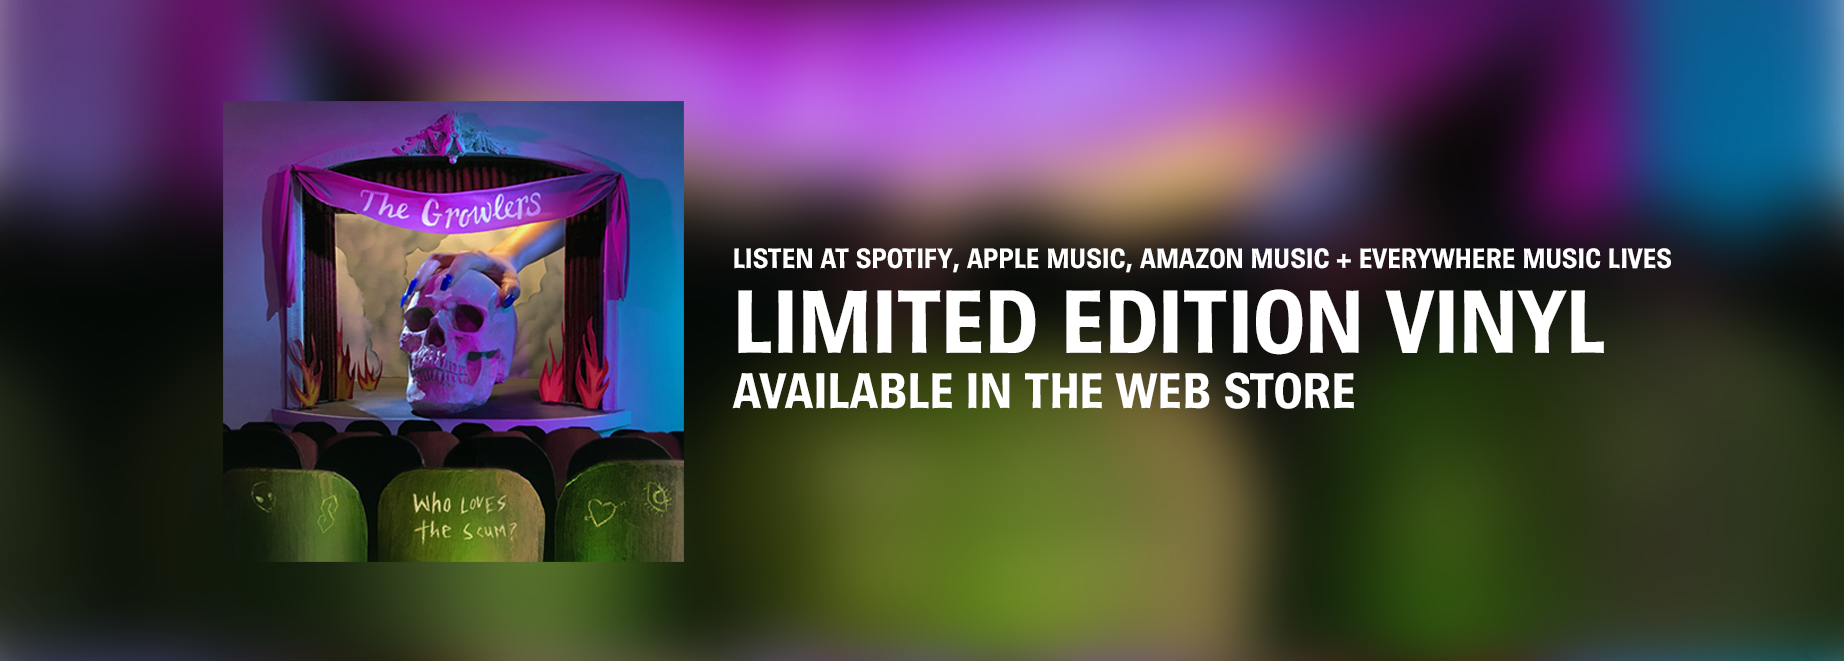 The Growlers - Who loves the scum? - Listen at Spotify, Apple Music, Amazon Music + Everywhere Music Lives Limited Edition Vinyl Available In The Web Store